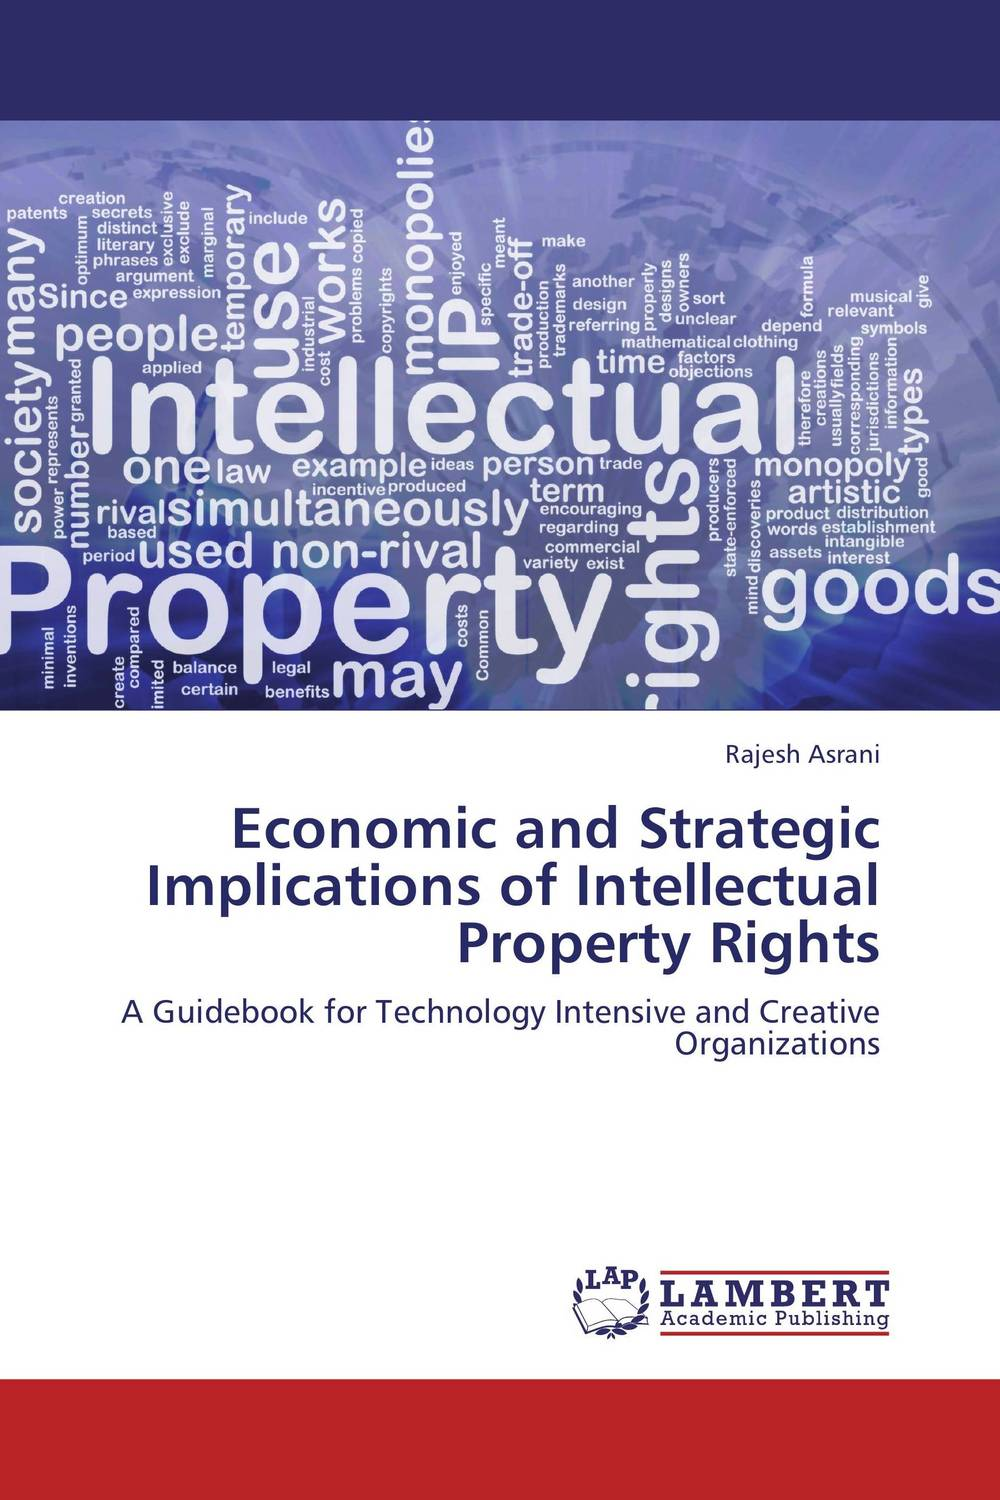 Economic and Strategic Implications of Intellectual Property Rights p c execs bullish on growth property casualty insurance statistical data included an article from national underwriter property